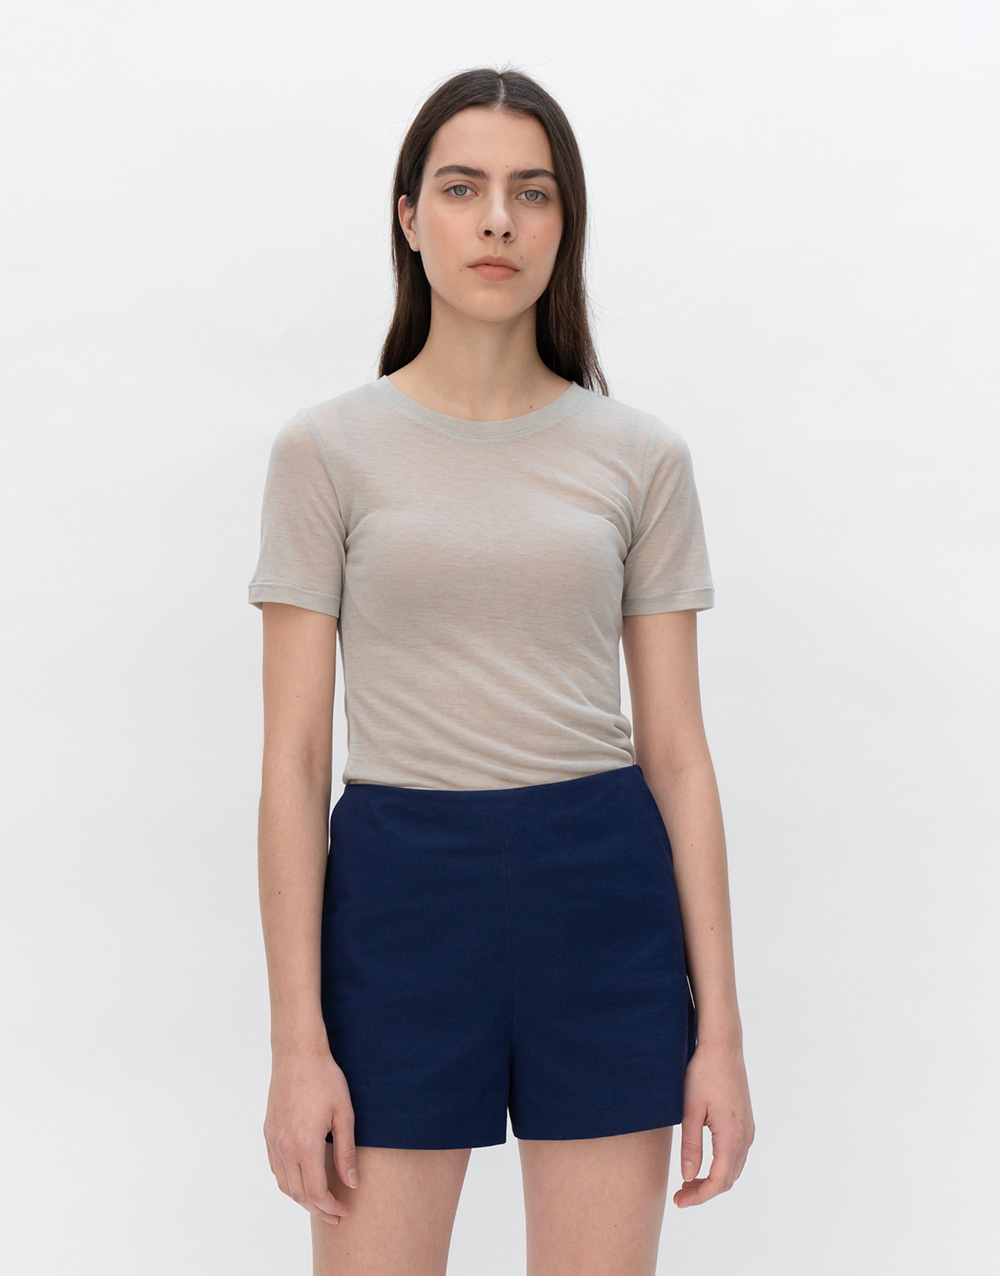 GBH APPAREL ADULT  See-through Stretch Top  KHAKI GREY